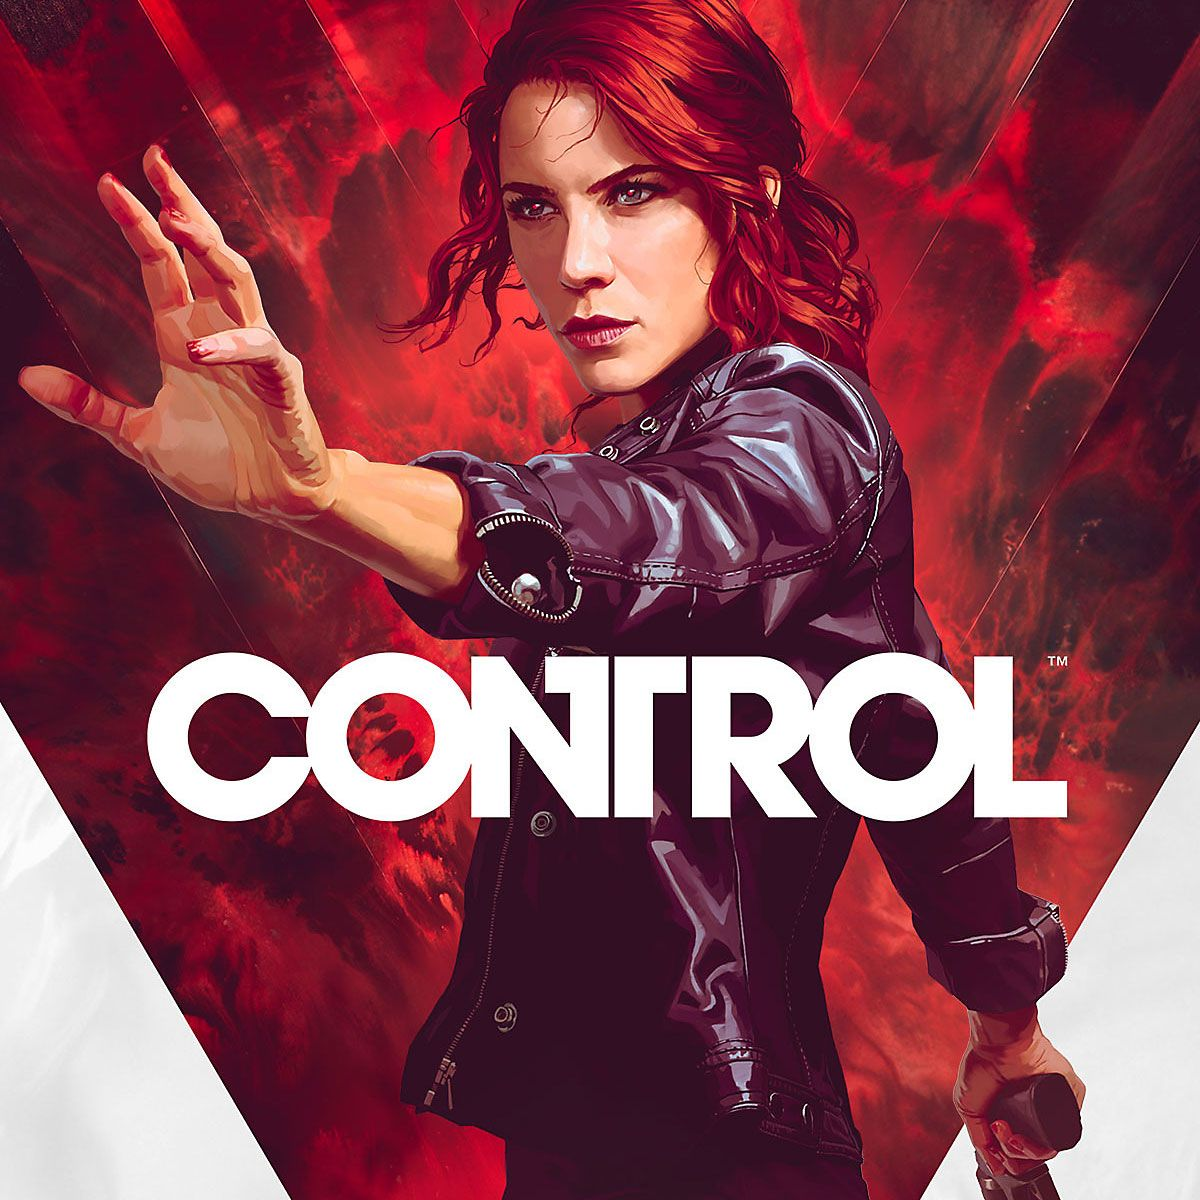 Congratulations to everyone at REMEDY!  DICE 2020 winners of Outstanding Achievements in 'Game Direction', 'Art Direction', 'Original Music Composition' and 'Action Game of the Year'! #controlremedy #remedygames #dice2020